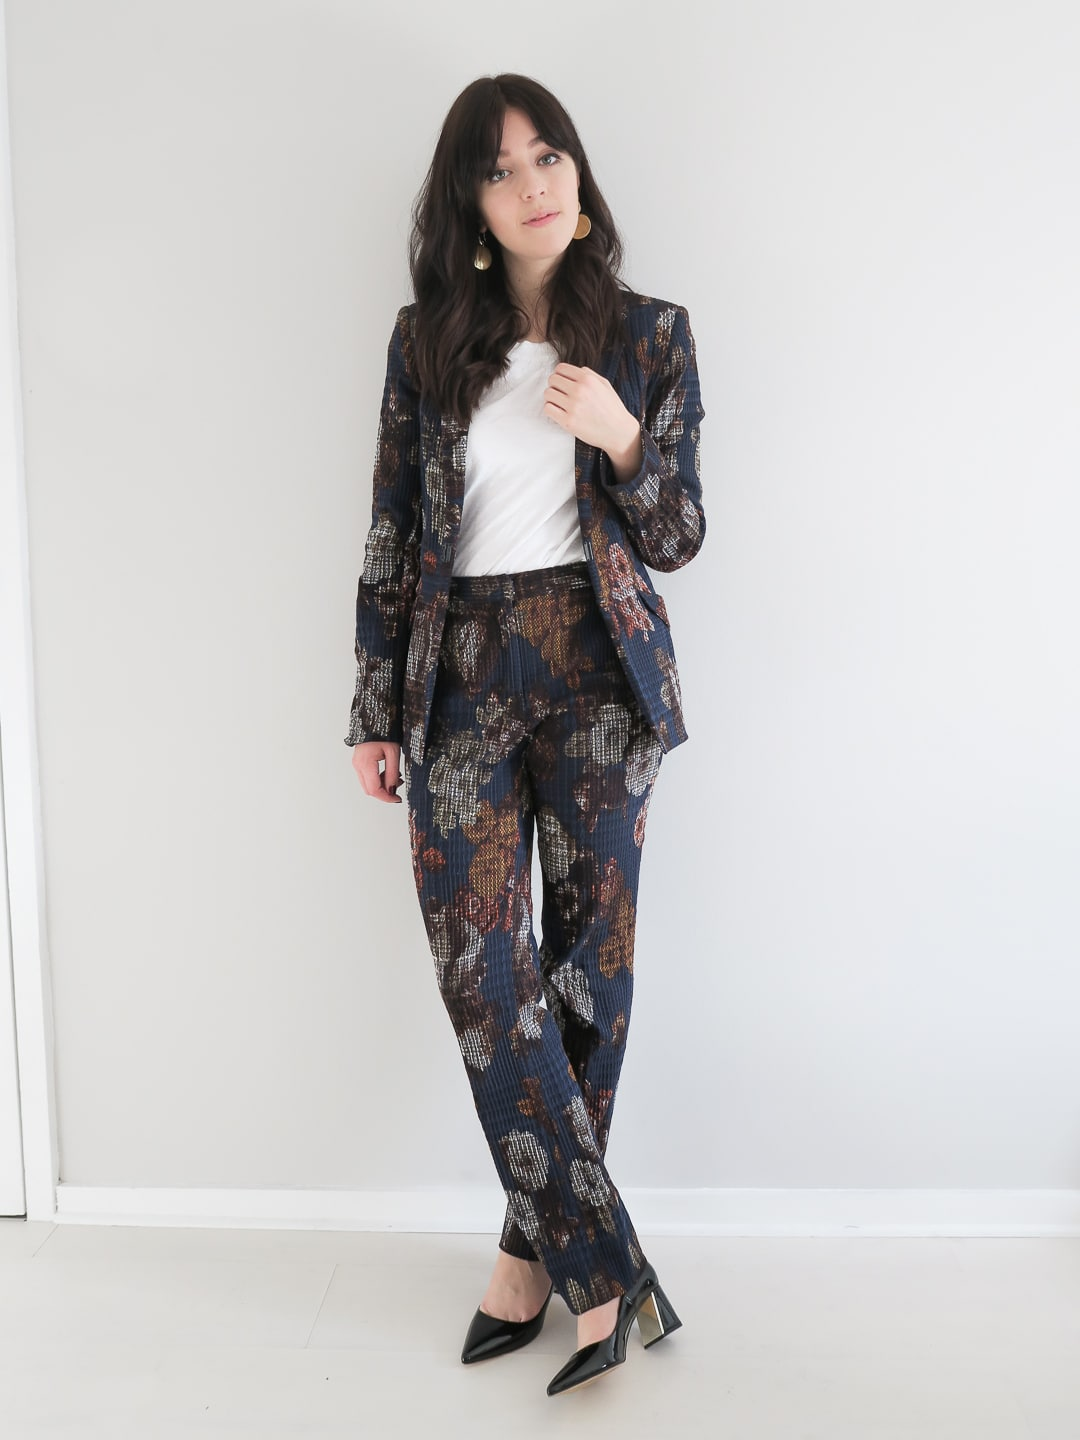 How To Pull Off a Womens Floral Suit | Curiously Conscious